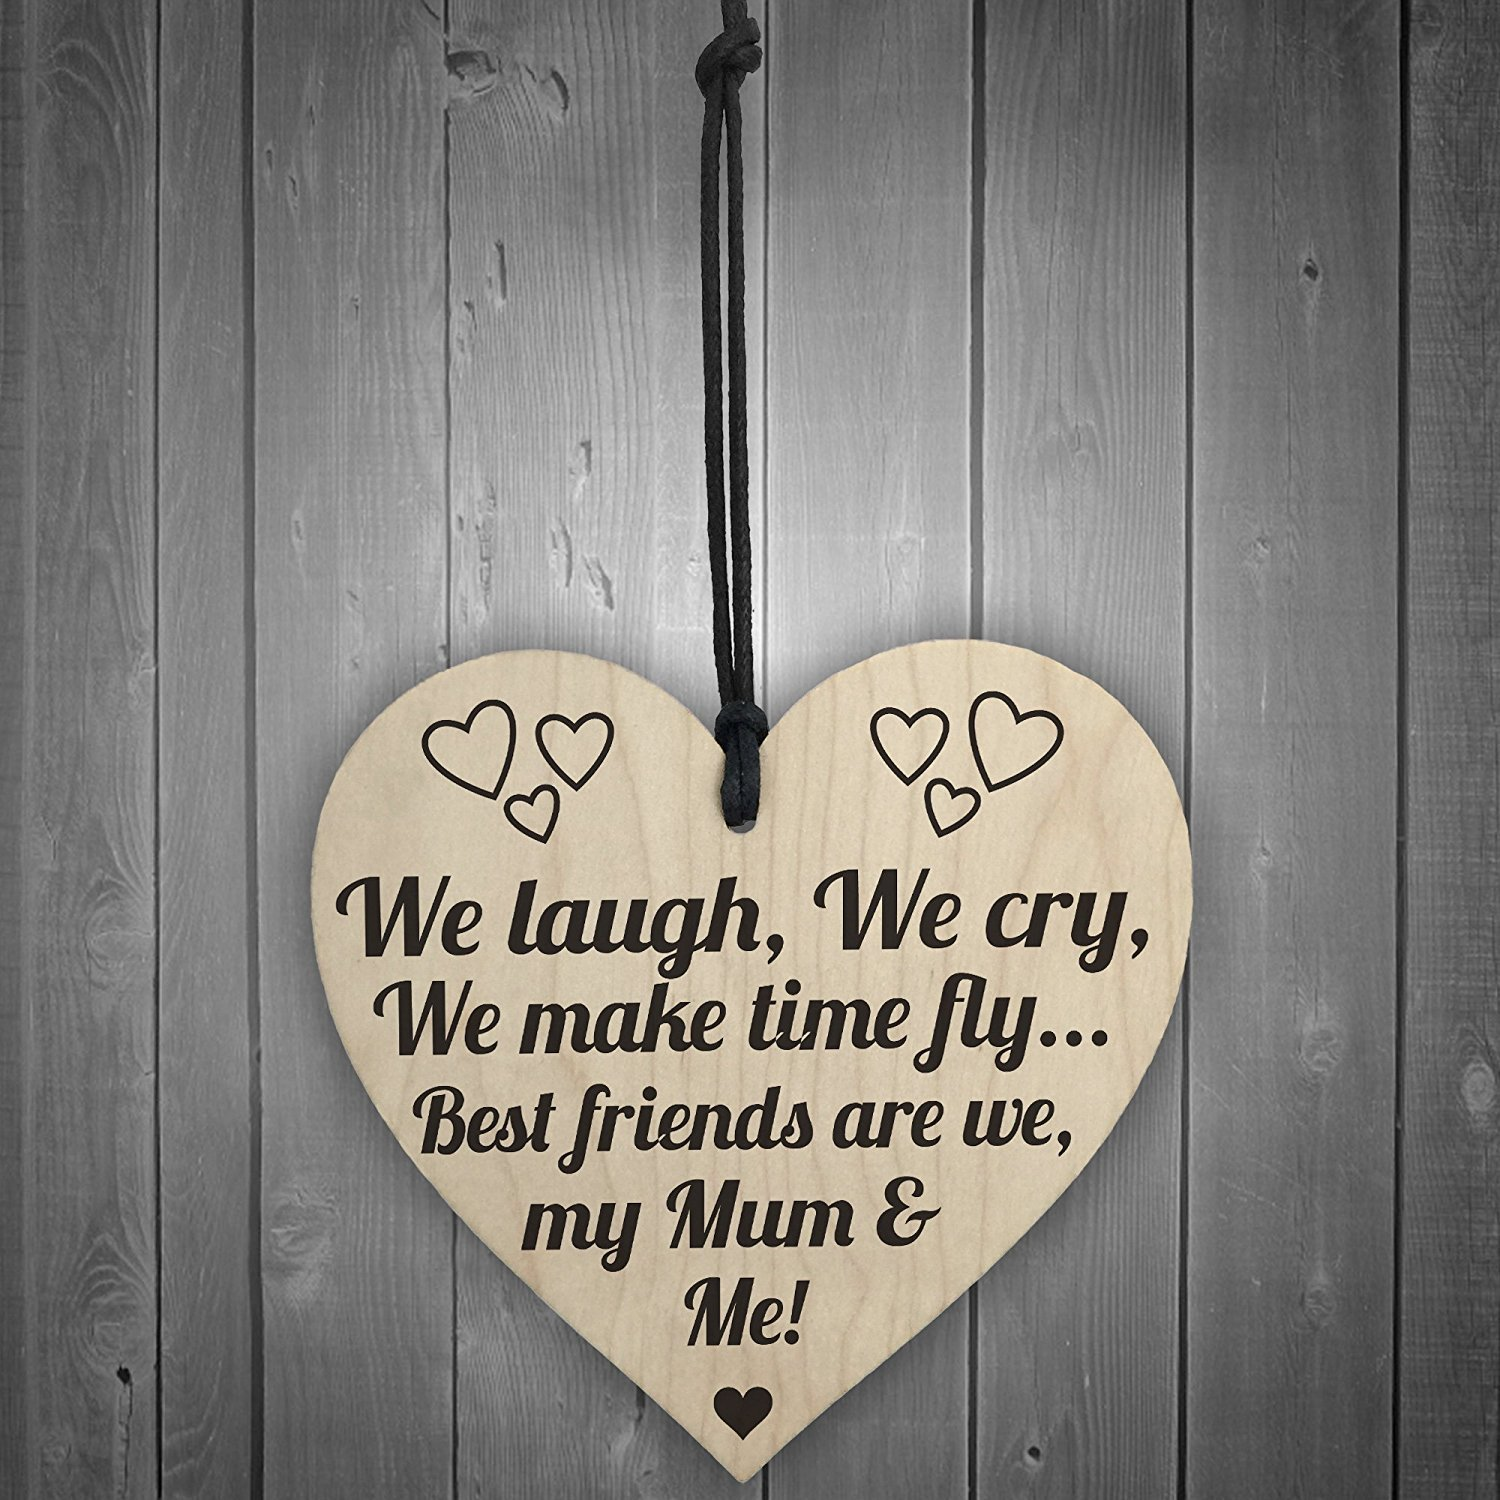 Meijiafei All The Best Friendships are Built on a Solid Foundation of Sarcasm Laughter Alcohol and a Dislike of The Same People Funny Friendship Gifts 10x5